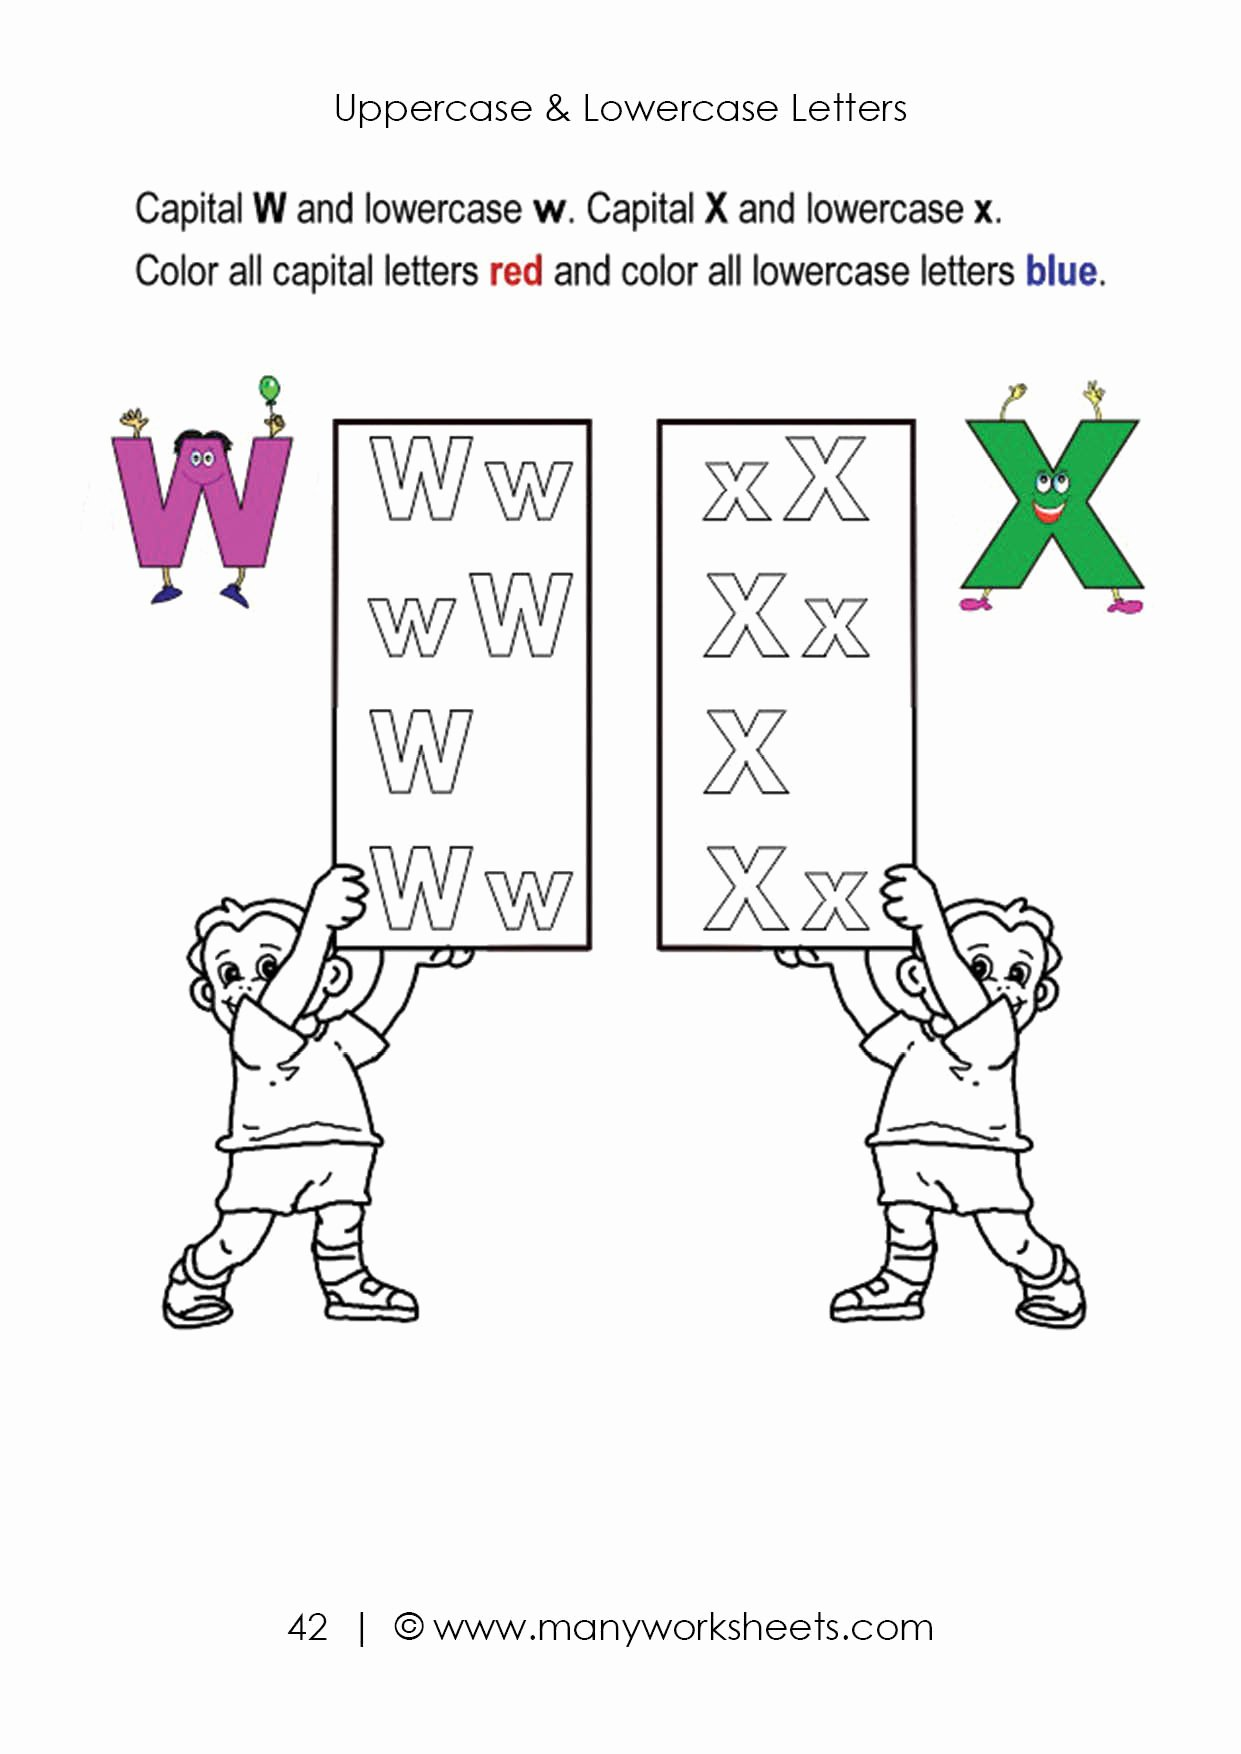 Lowercase Letters Worksheets for Preschoolers Beautiful Uppercase and Lowercase Letters Recognition Worksheet